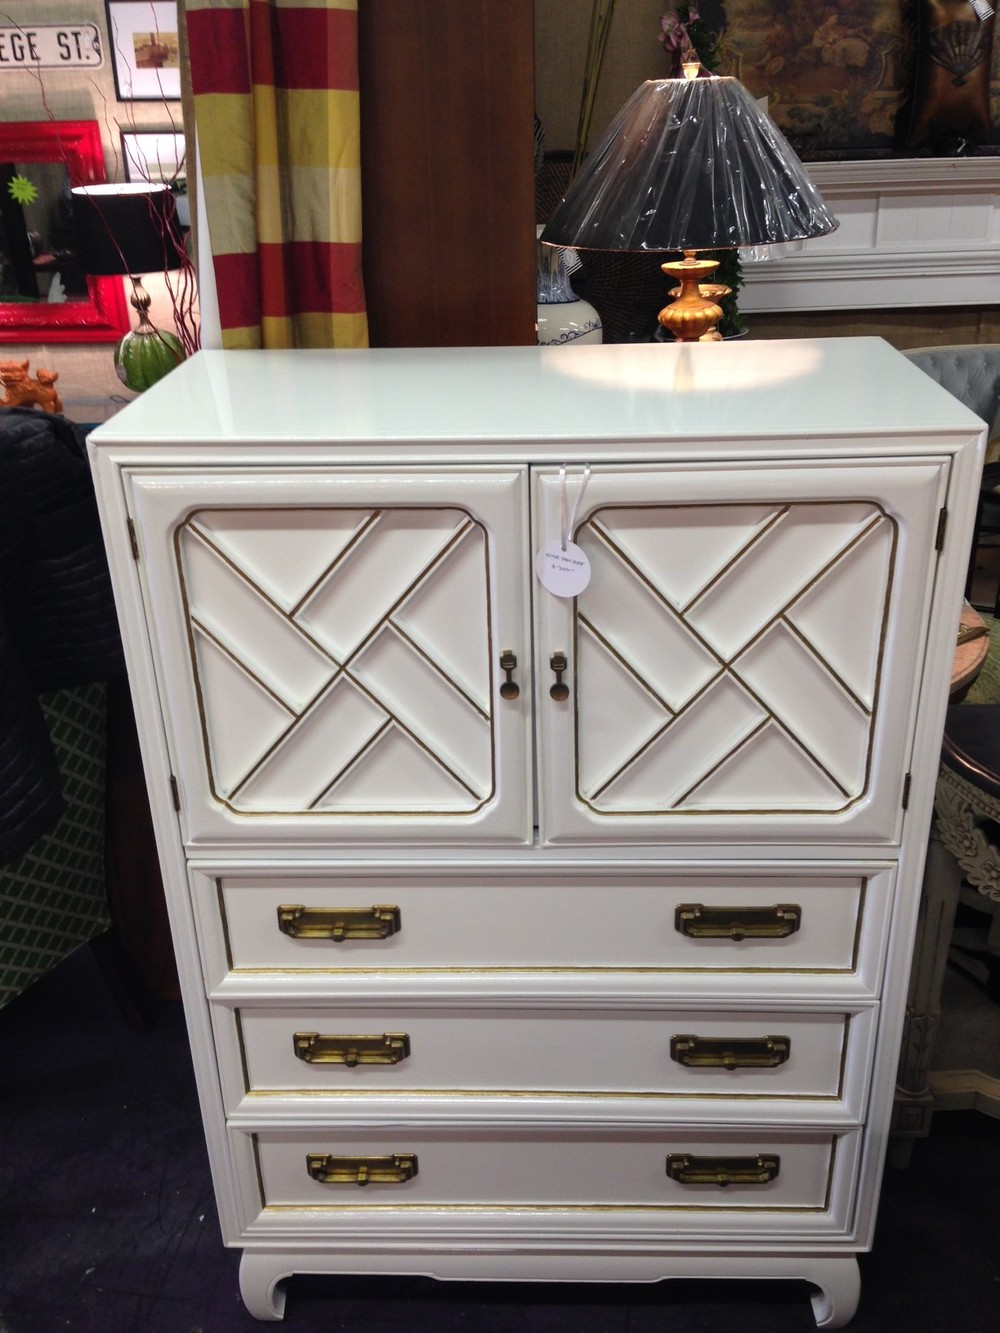 Ming door chest. Another job by Stein's!